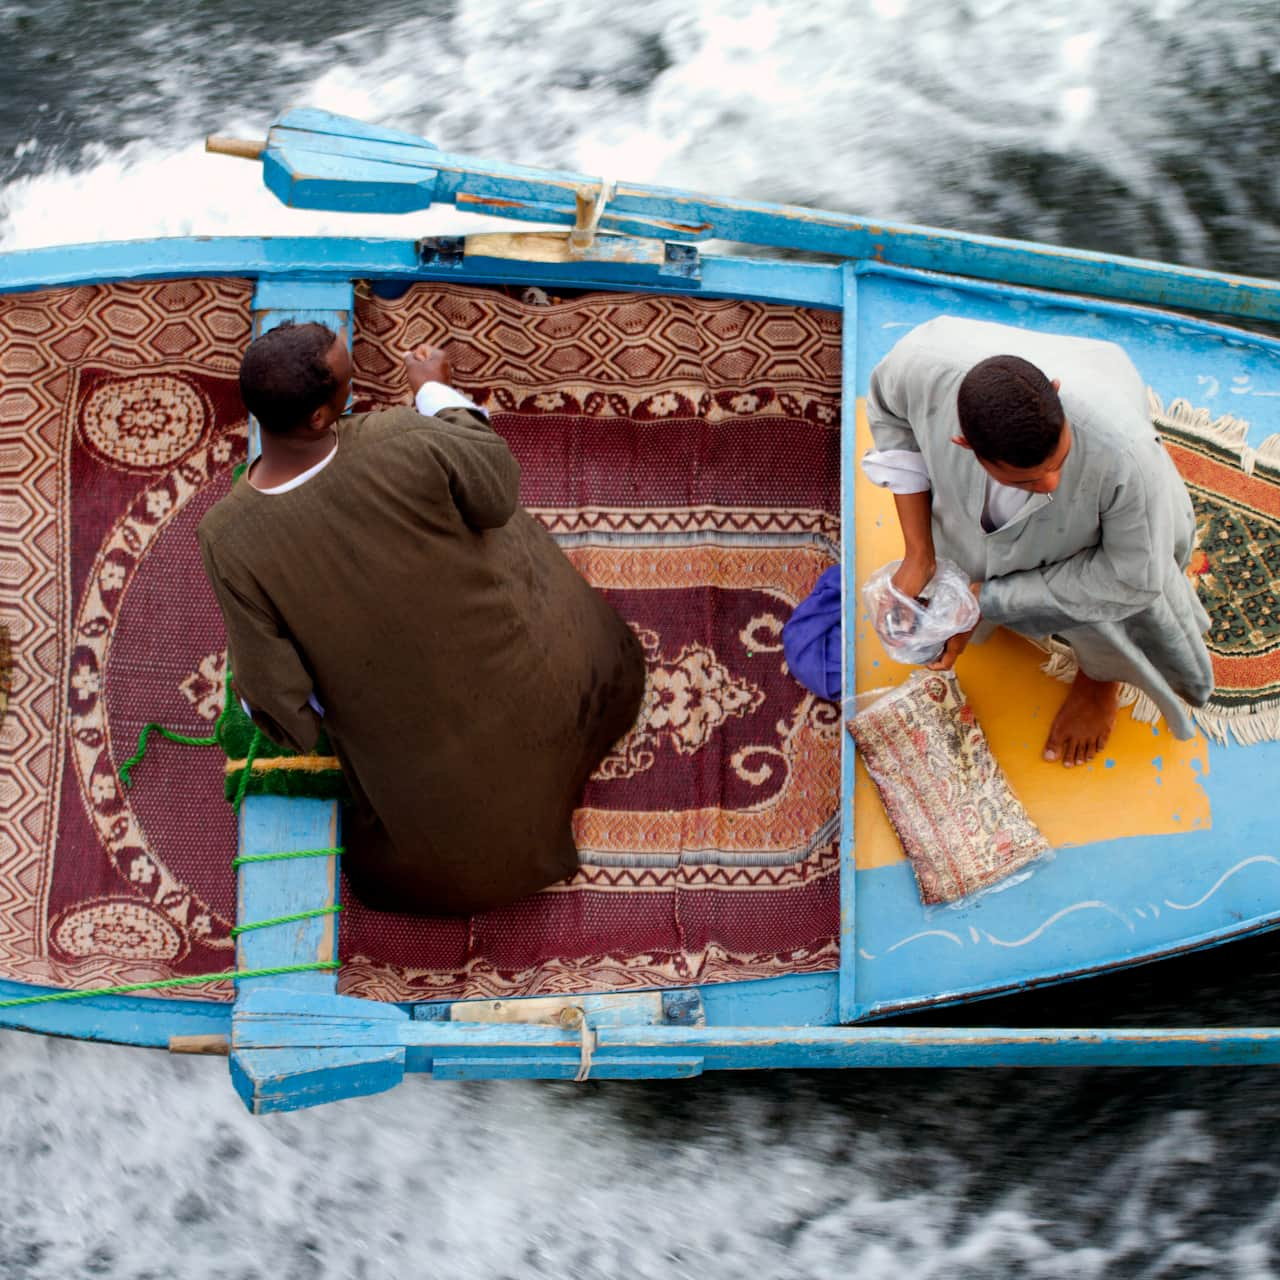 A birds-eye view of 2 people riding in a boat with rugs